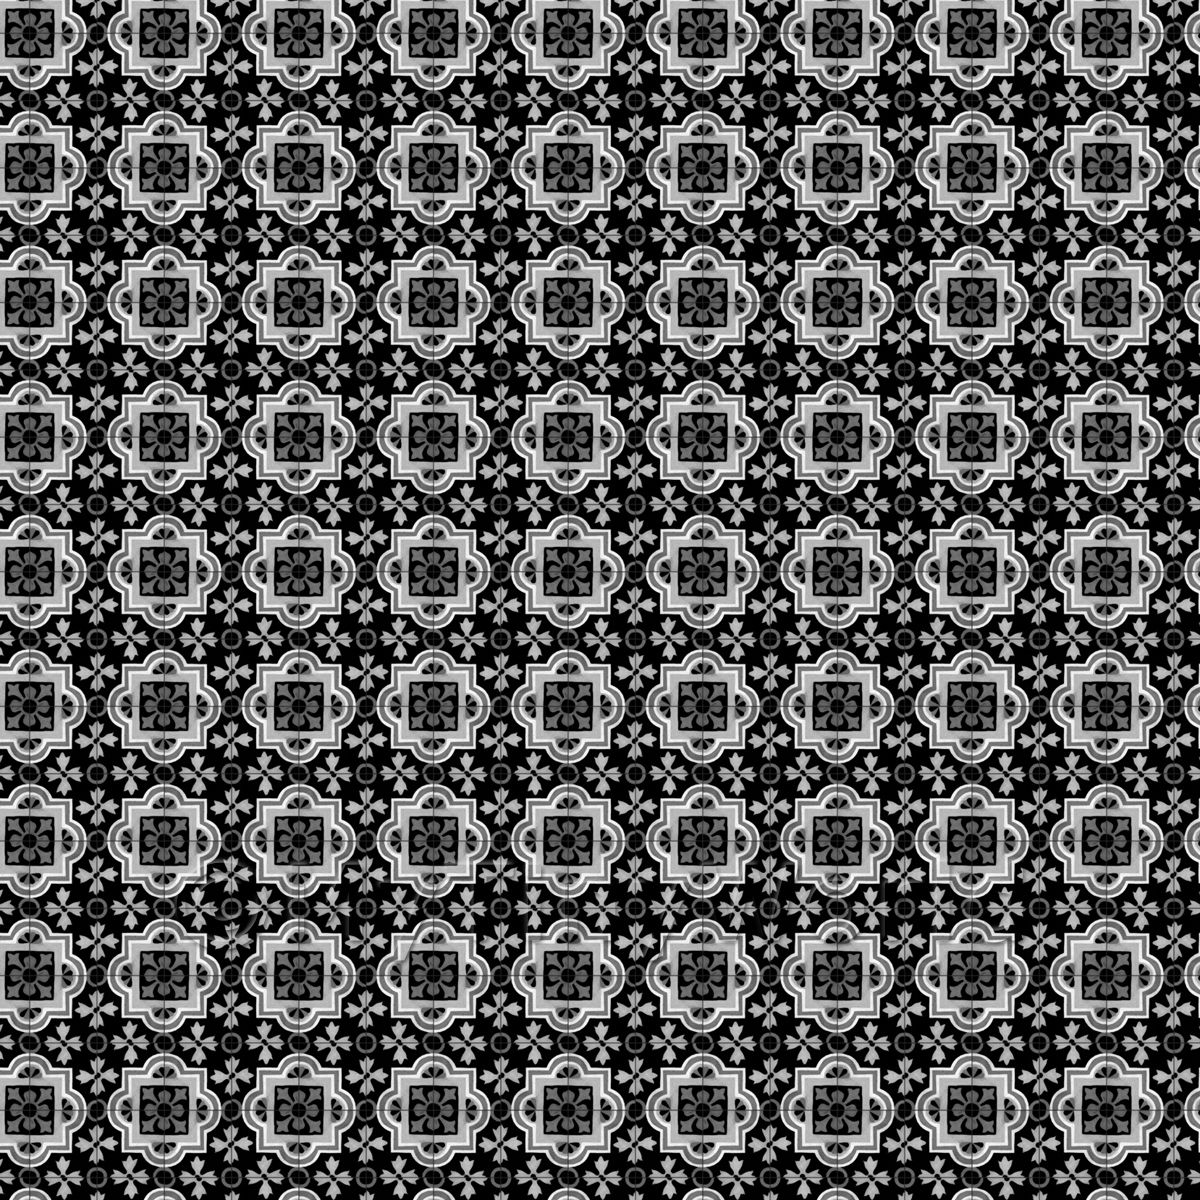 1:24th Black Backed Grey Ornate Design Tile Sheet With Black Grout